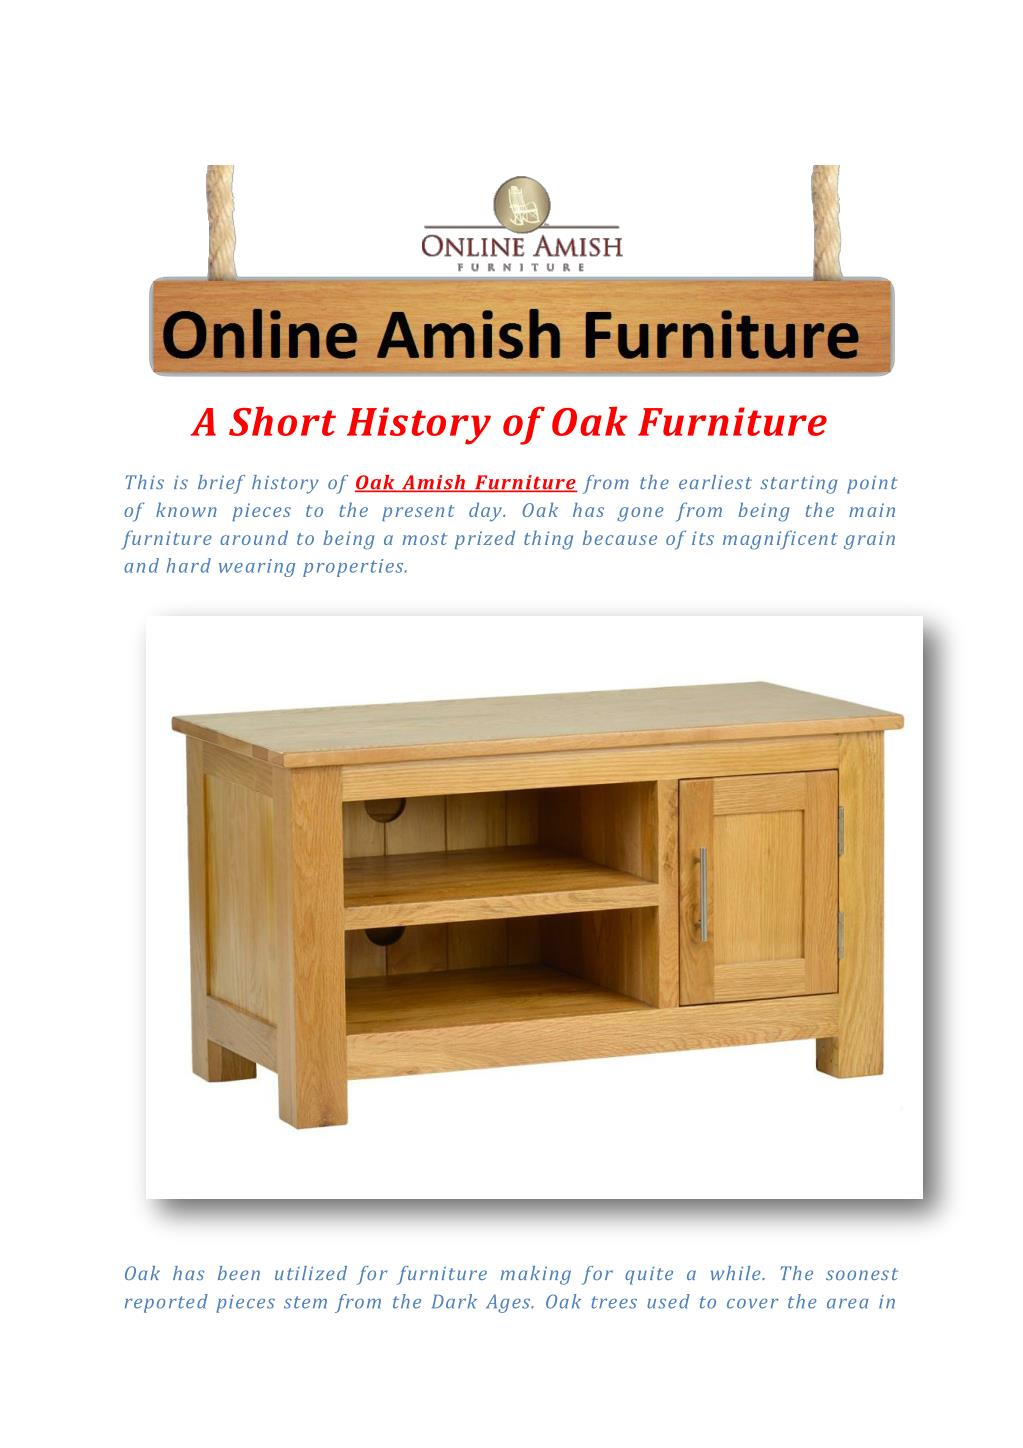 Ppt A Short History Of Oak Furniture Powerpoint Presentation Free Download Id 7352721